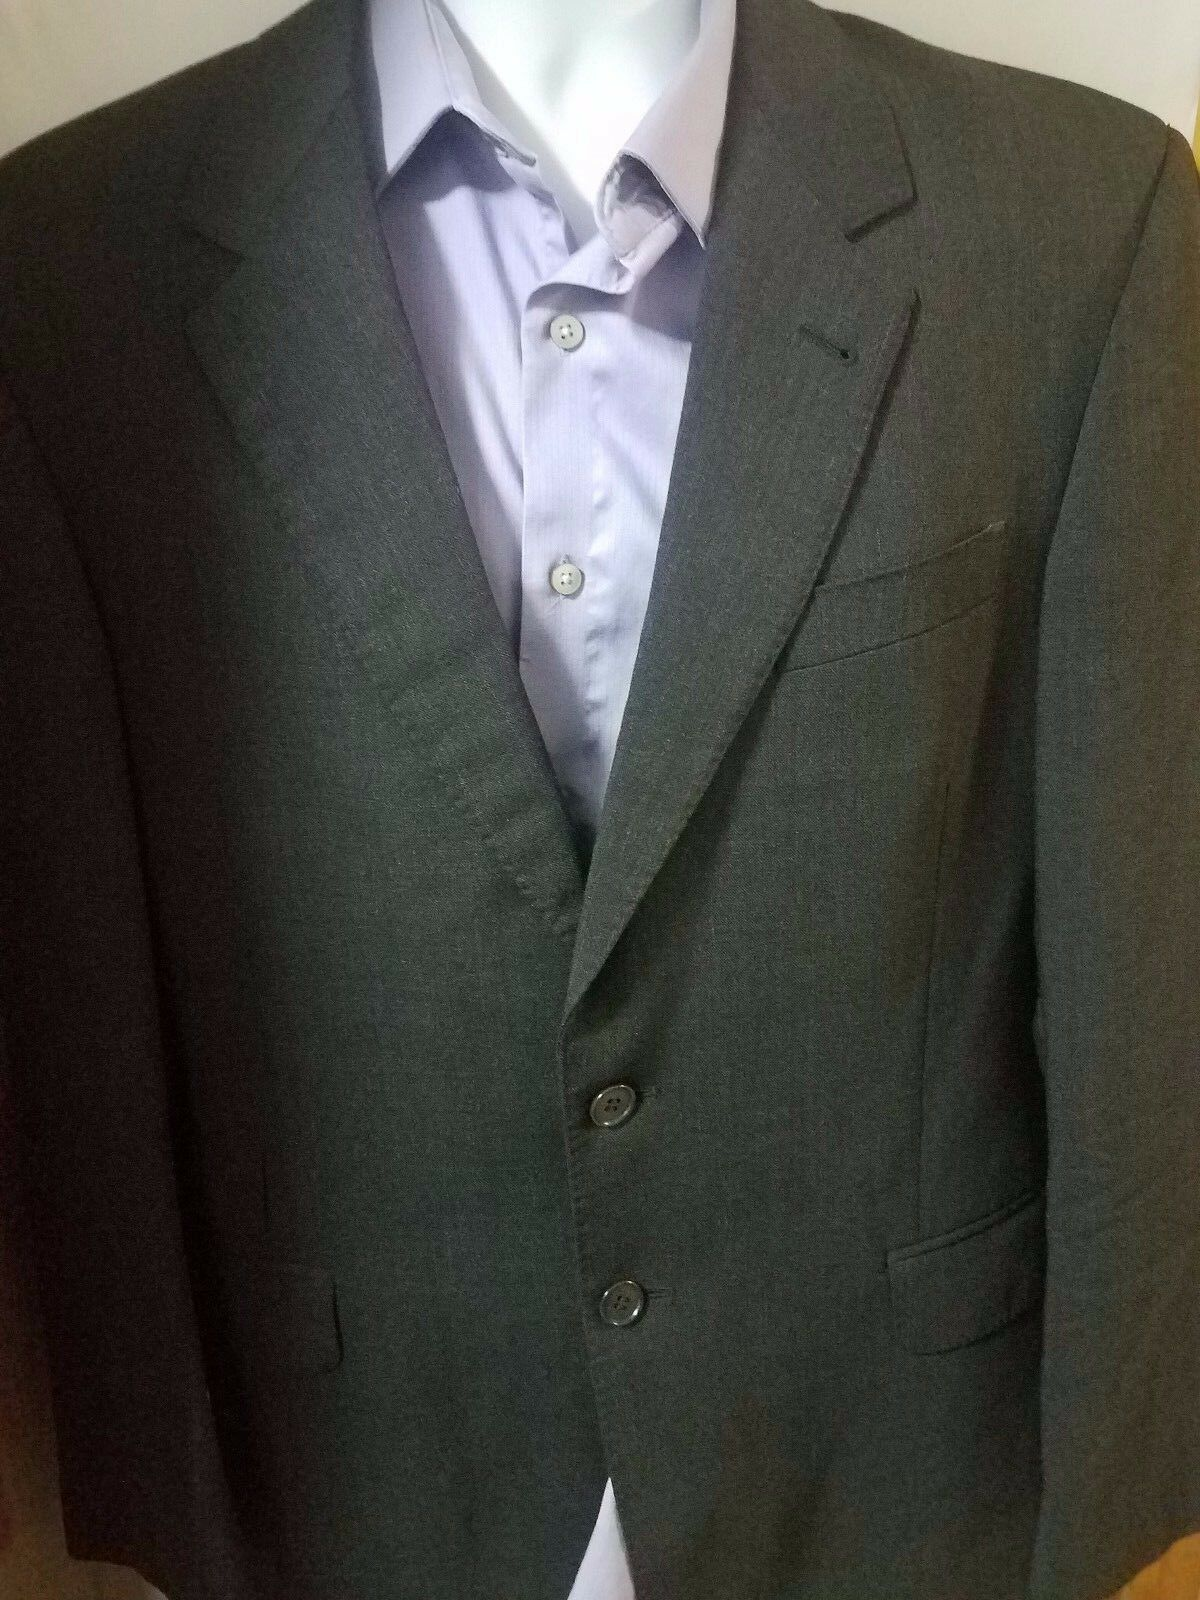 Paul Smith Charcoal Wool Sport Coat Blazer Size 40 R - Made in